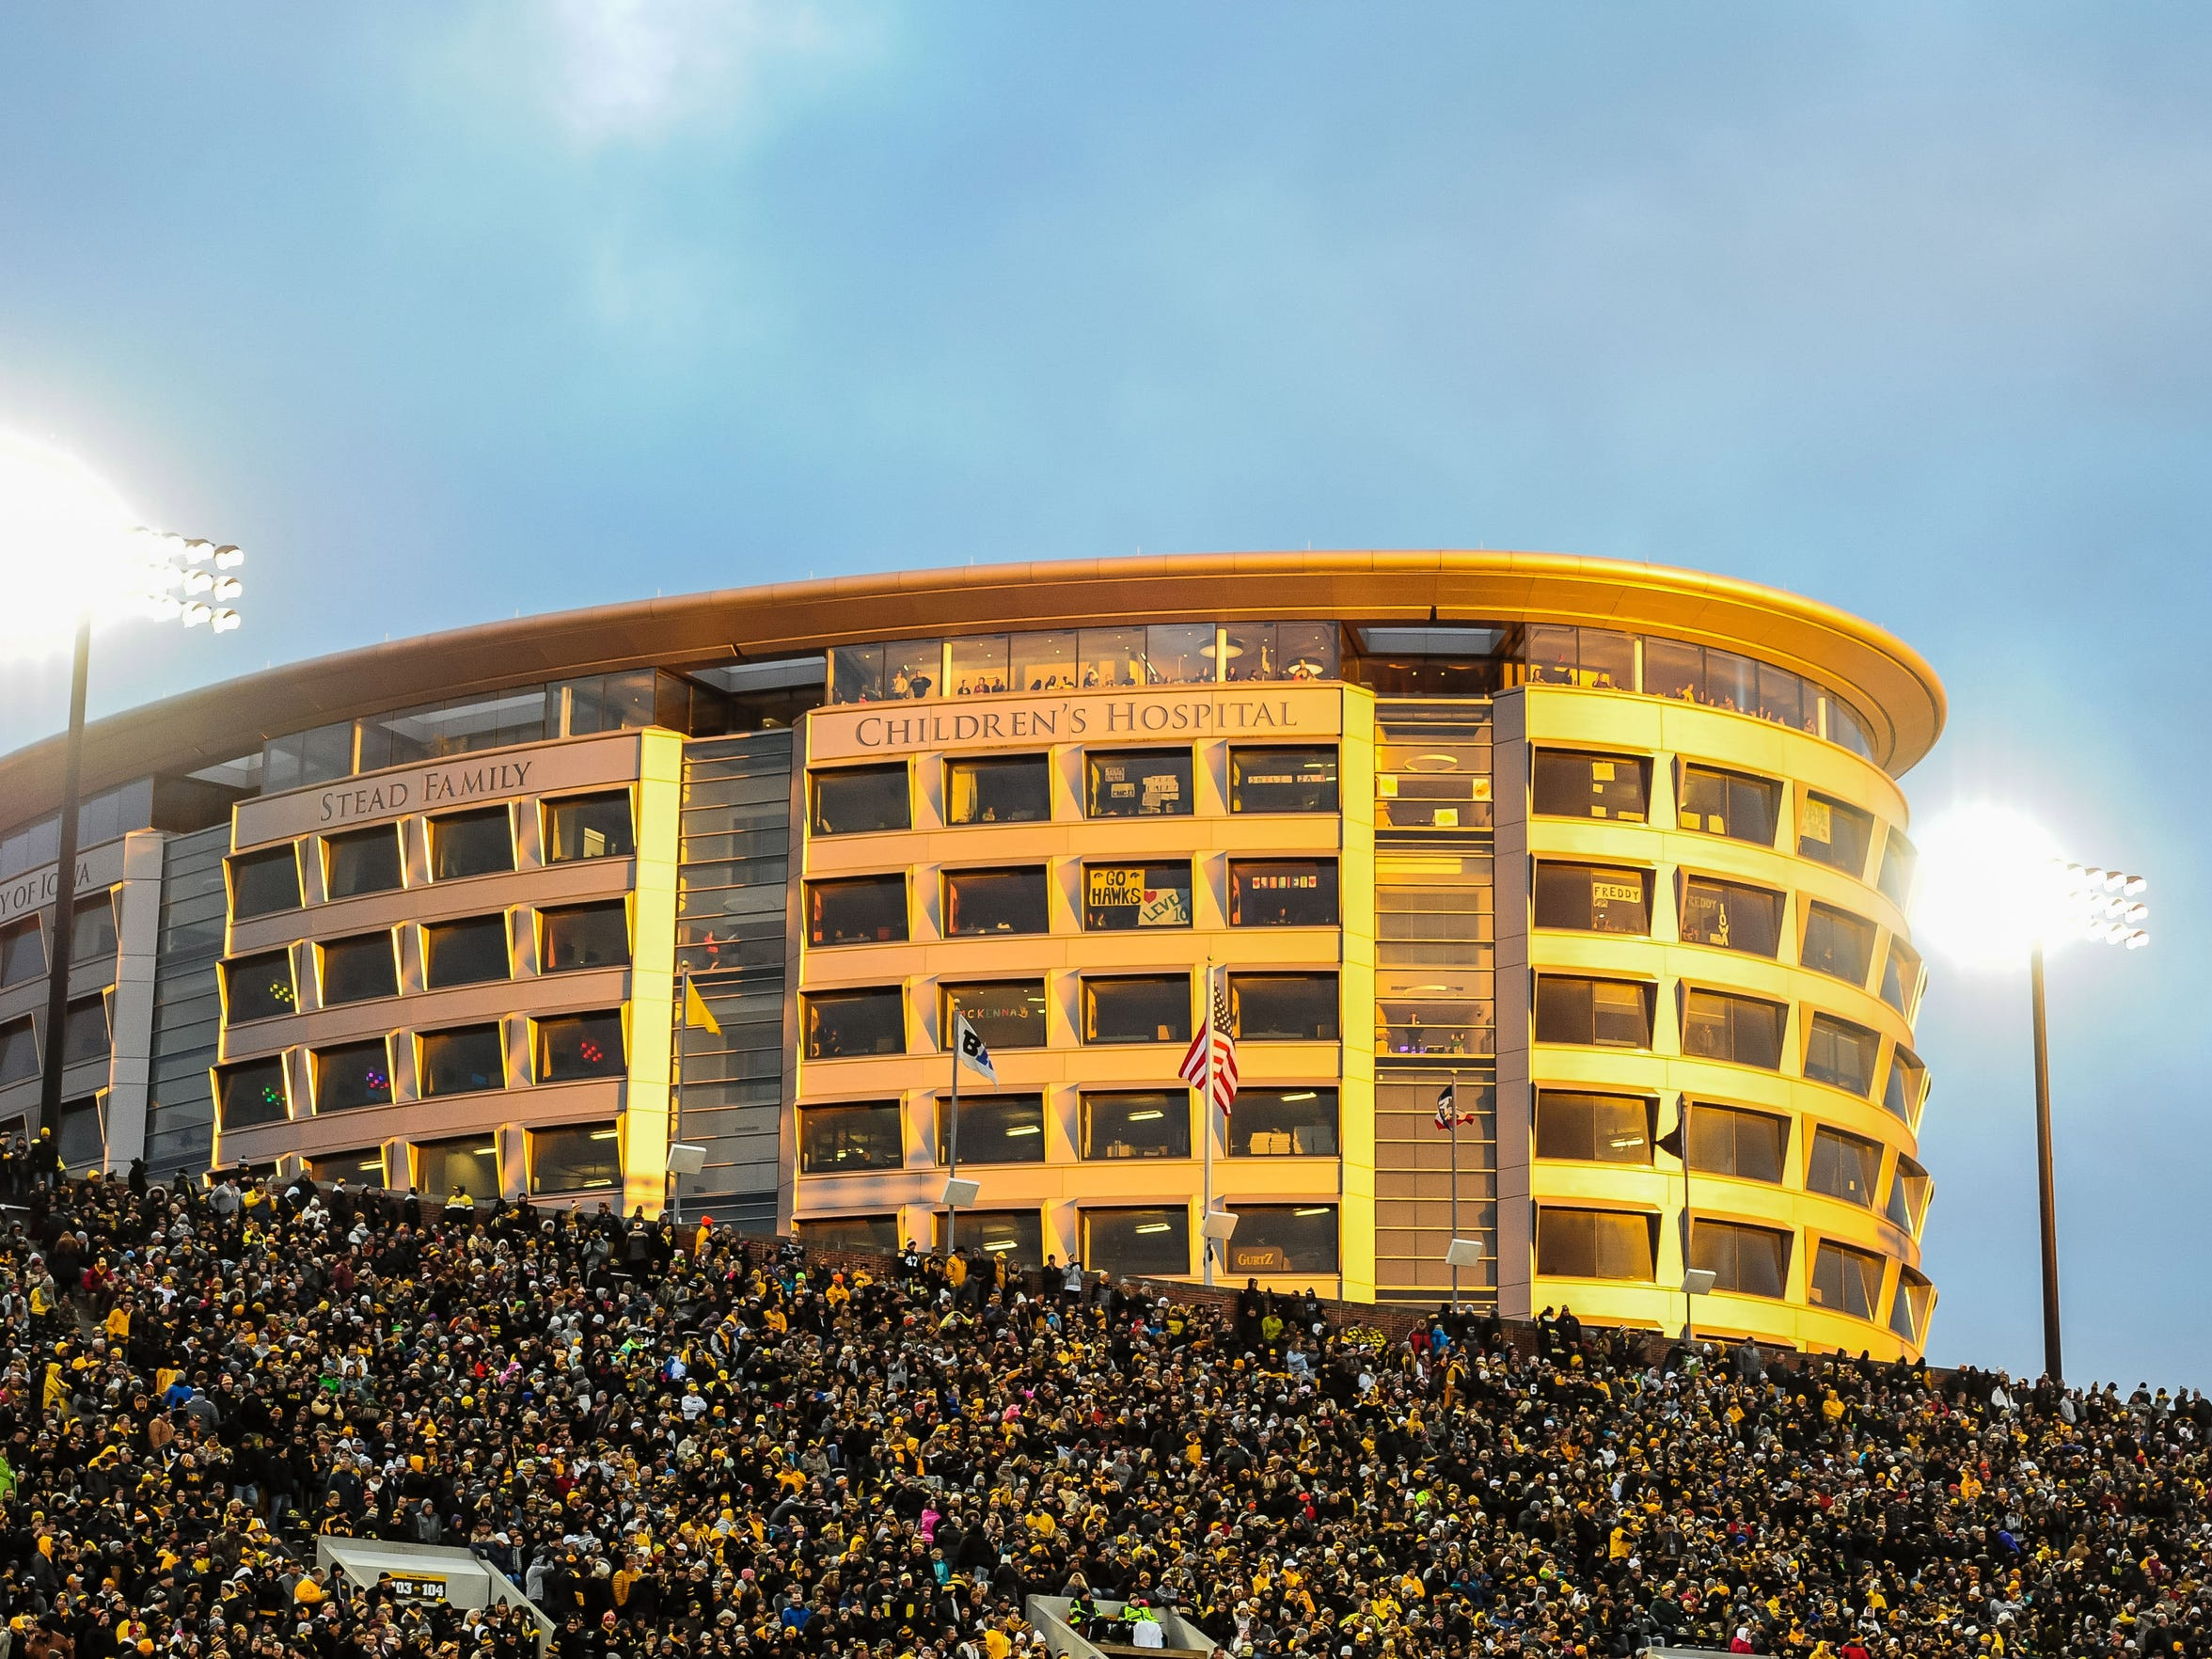 The Iowa Children's Hospital overlooks Kinnick Stadium and features a wraparound view of Iowa City from the highest structure in the county.